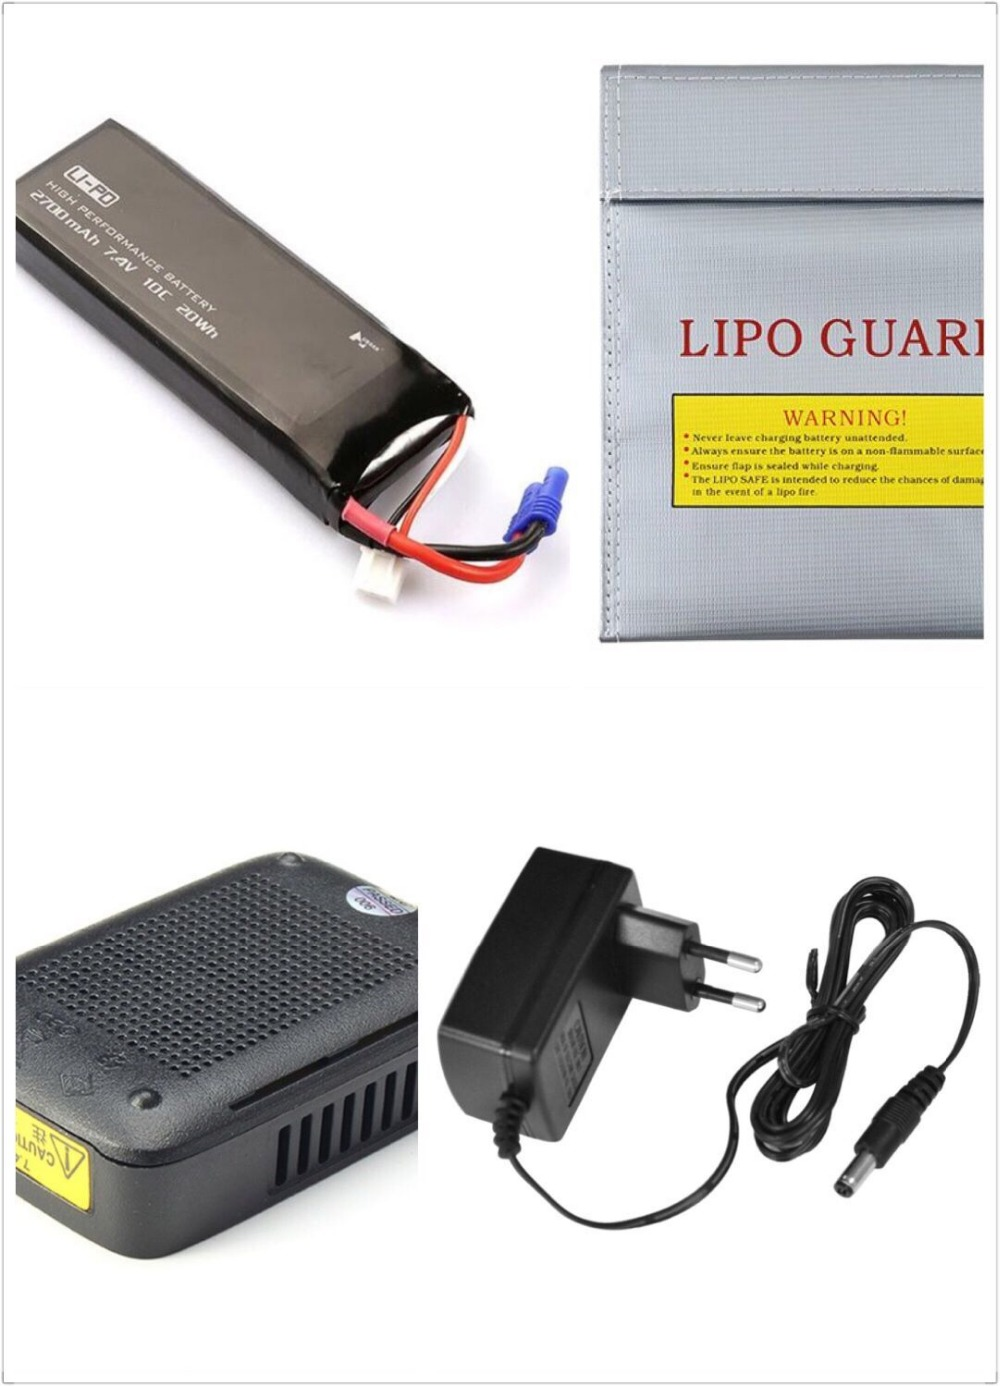 Original Hubsan H501S X4 RC Quadcopter Spare Parts 7.4V 2700mAh 10C lipo Battery with charger adapter safe bag Combo